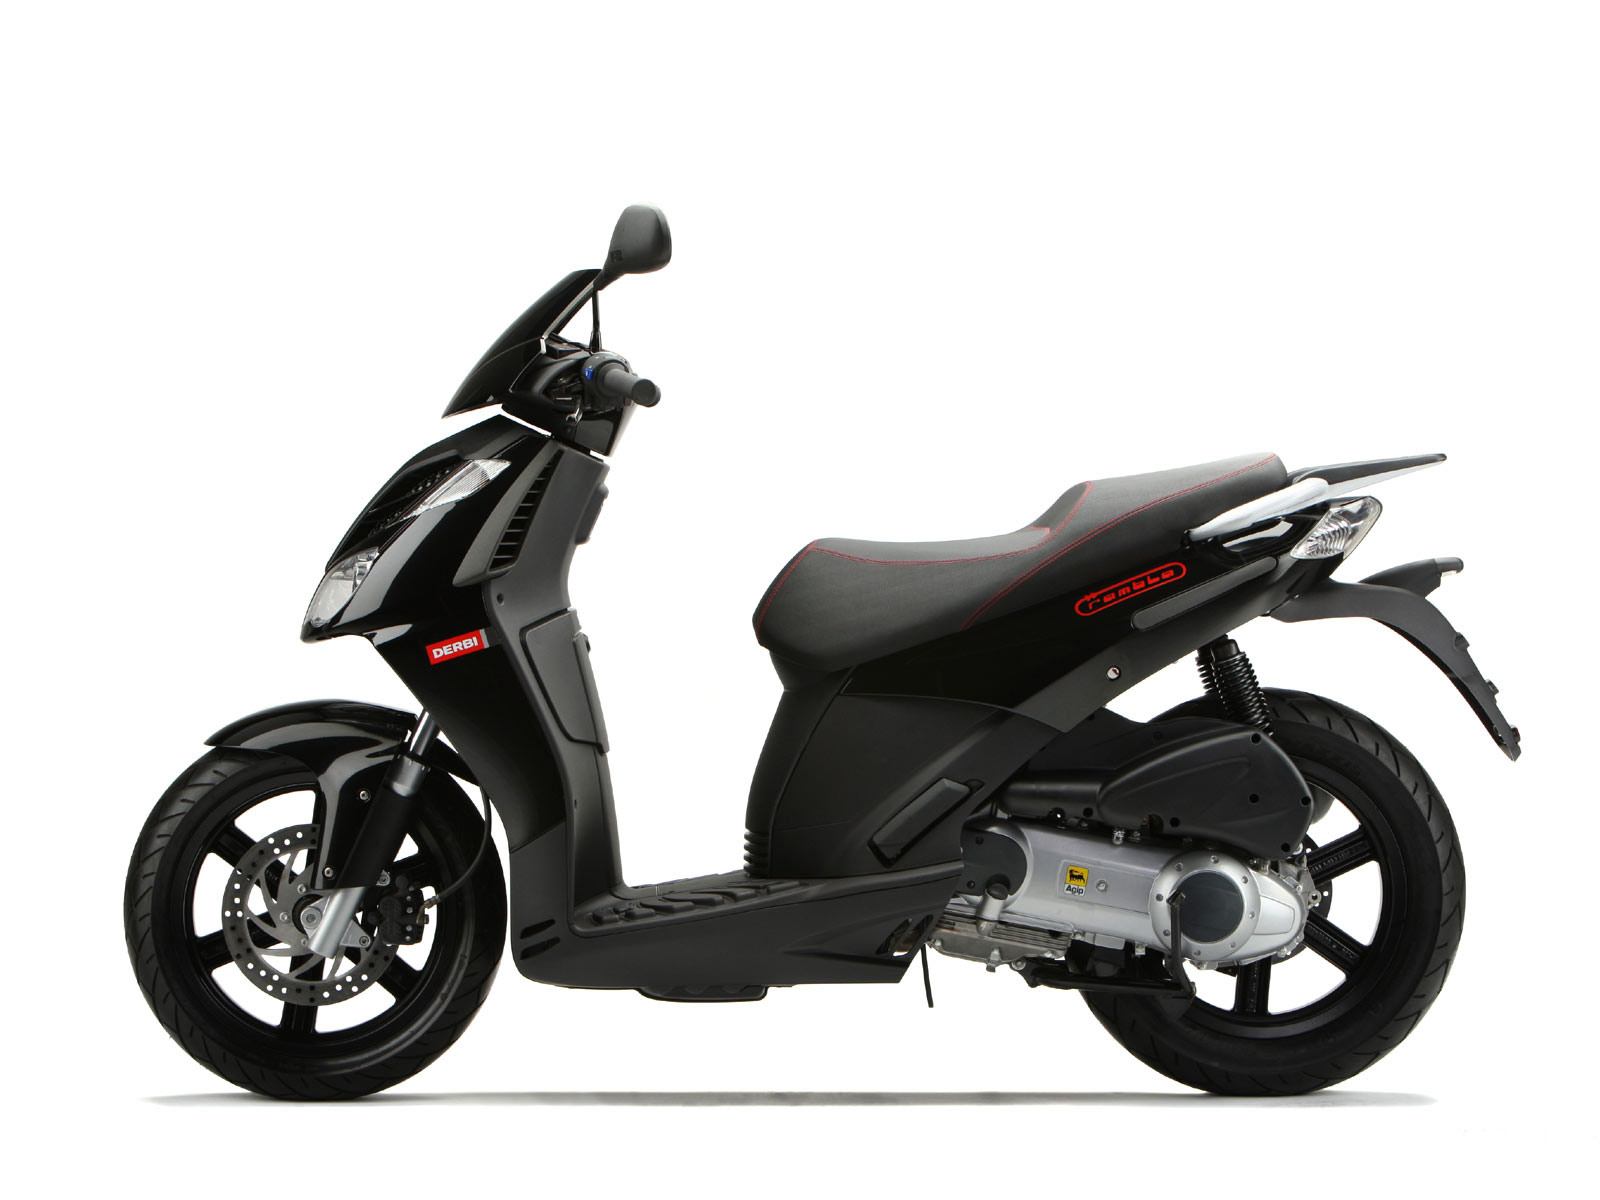 2008 DERBI Rambla 125 Scooter pictures Accident lawyers info